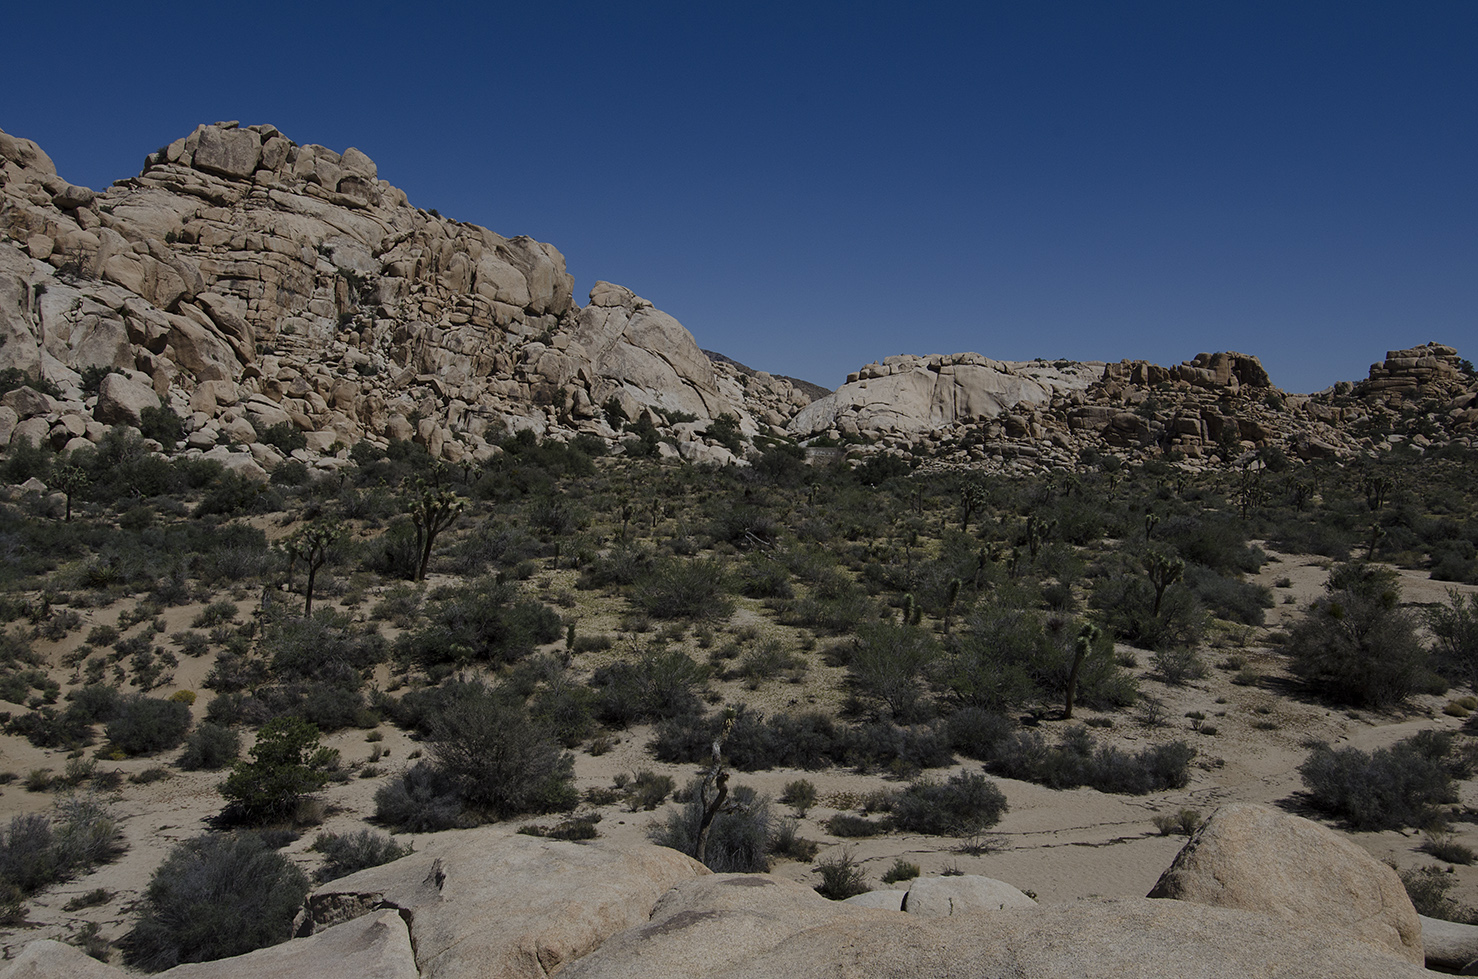 This pile of rocks provides a great view. This is looking back towards Barker Dam.